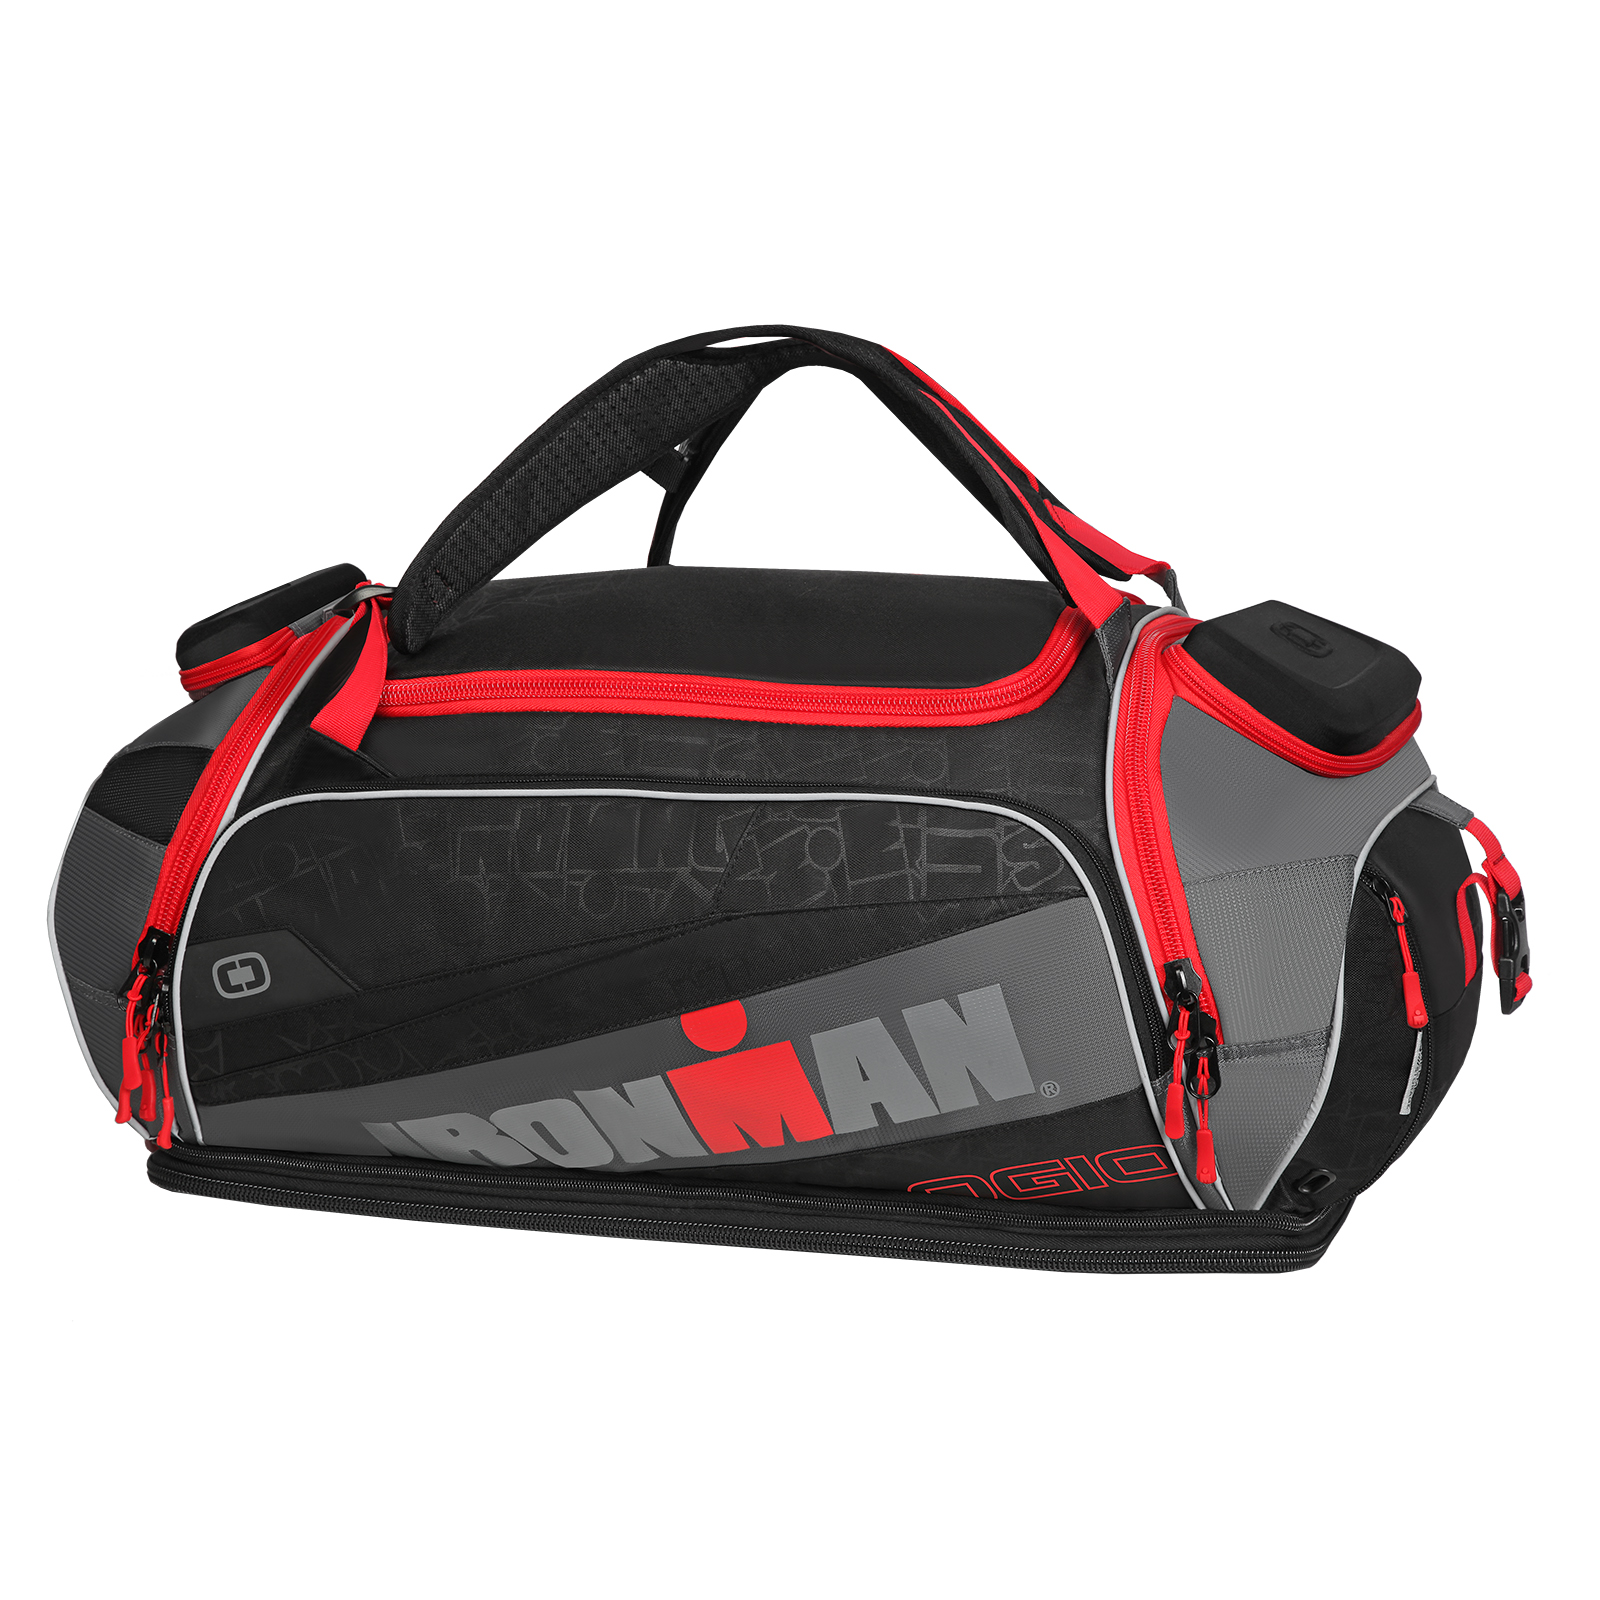 IRONMAN Ogio 9.0 Duffel Bag